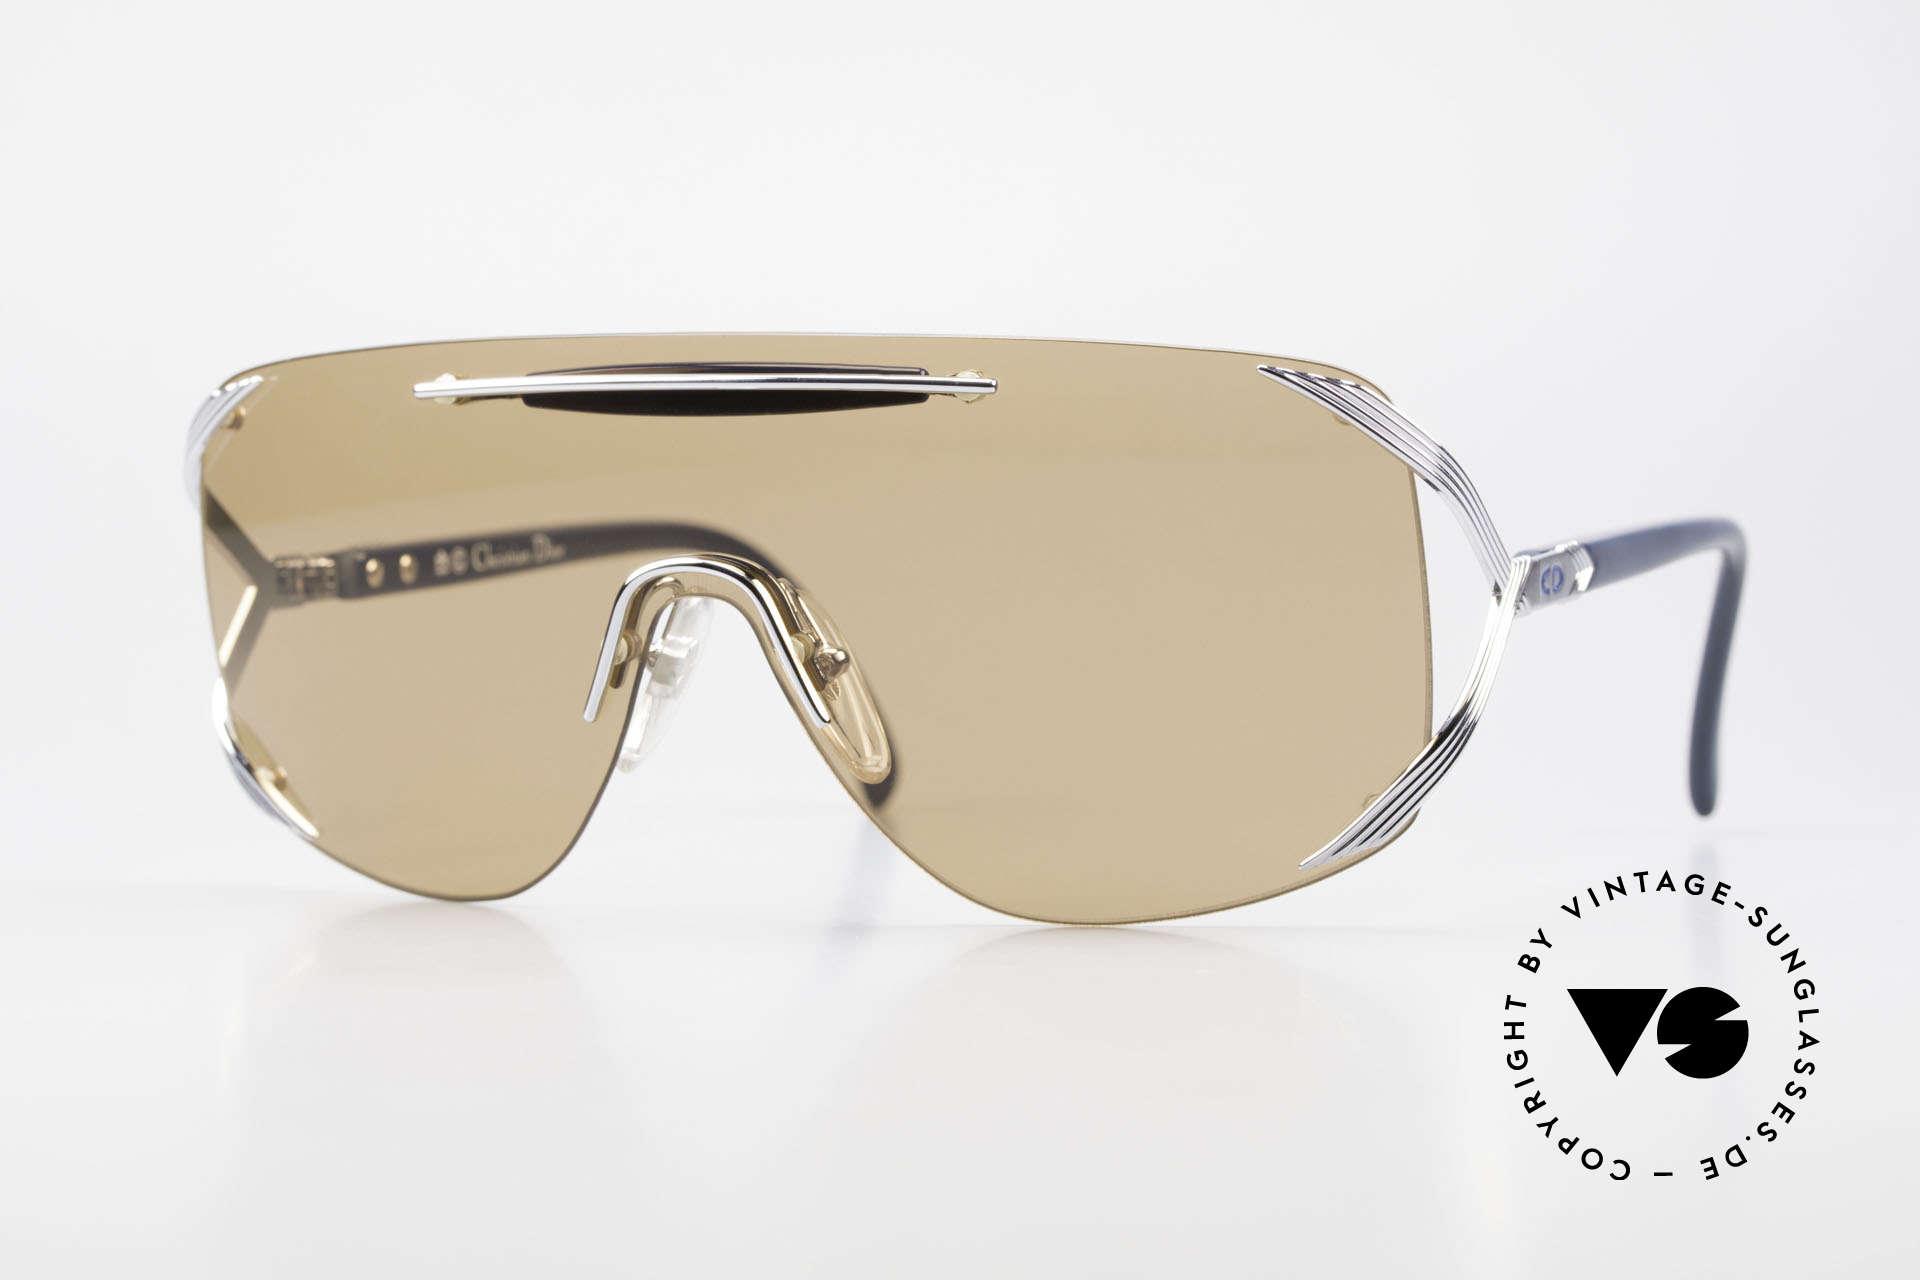 Christian Dior 2434 Panorama View Sunglasses 80s, vintage DIOR designer sunglasses from 1989/1990, Made for Women